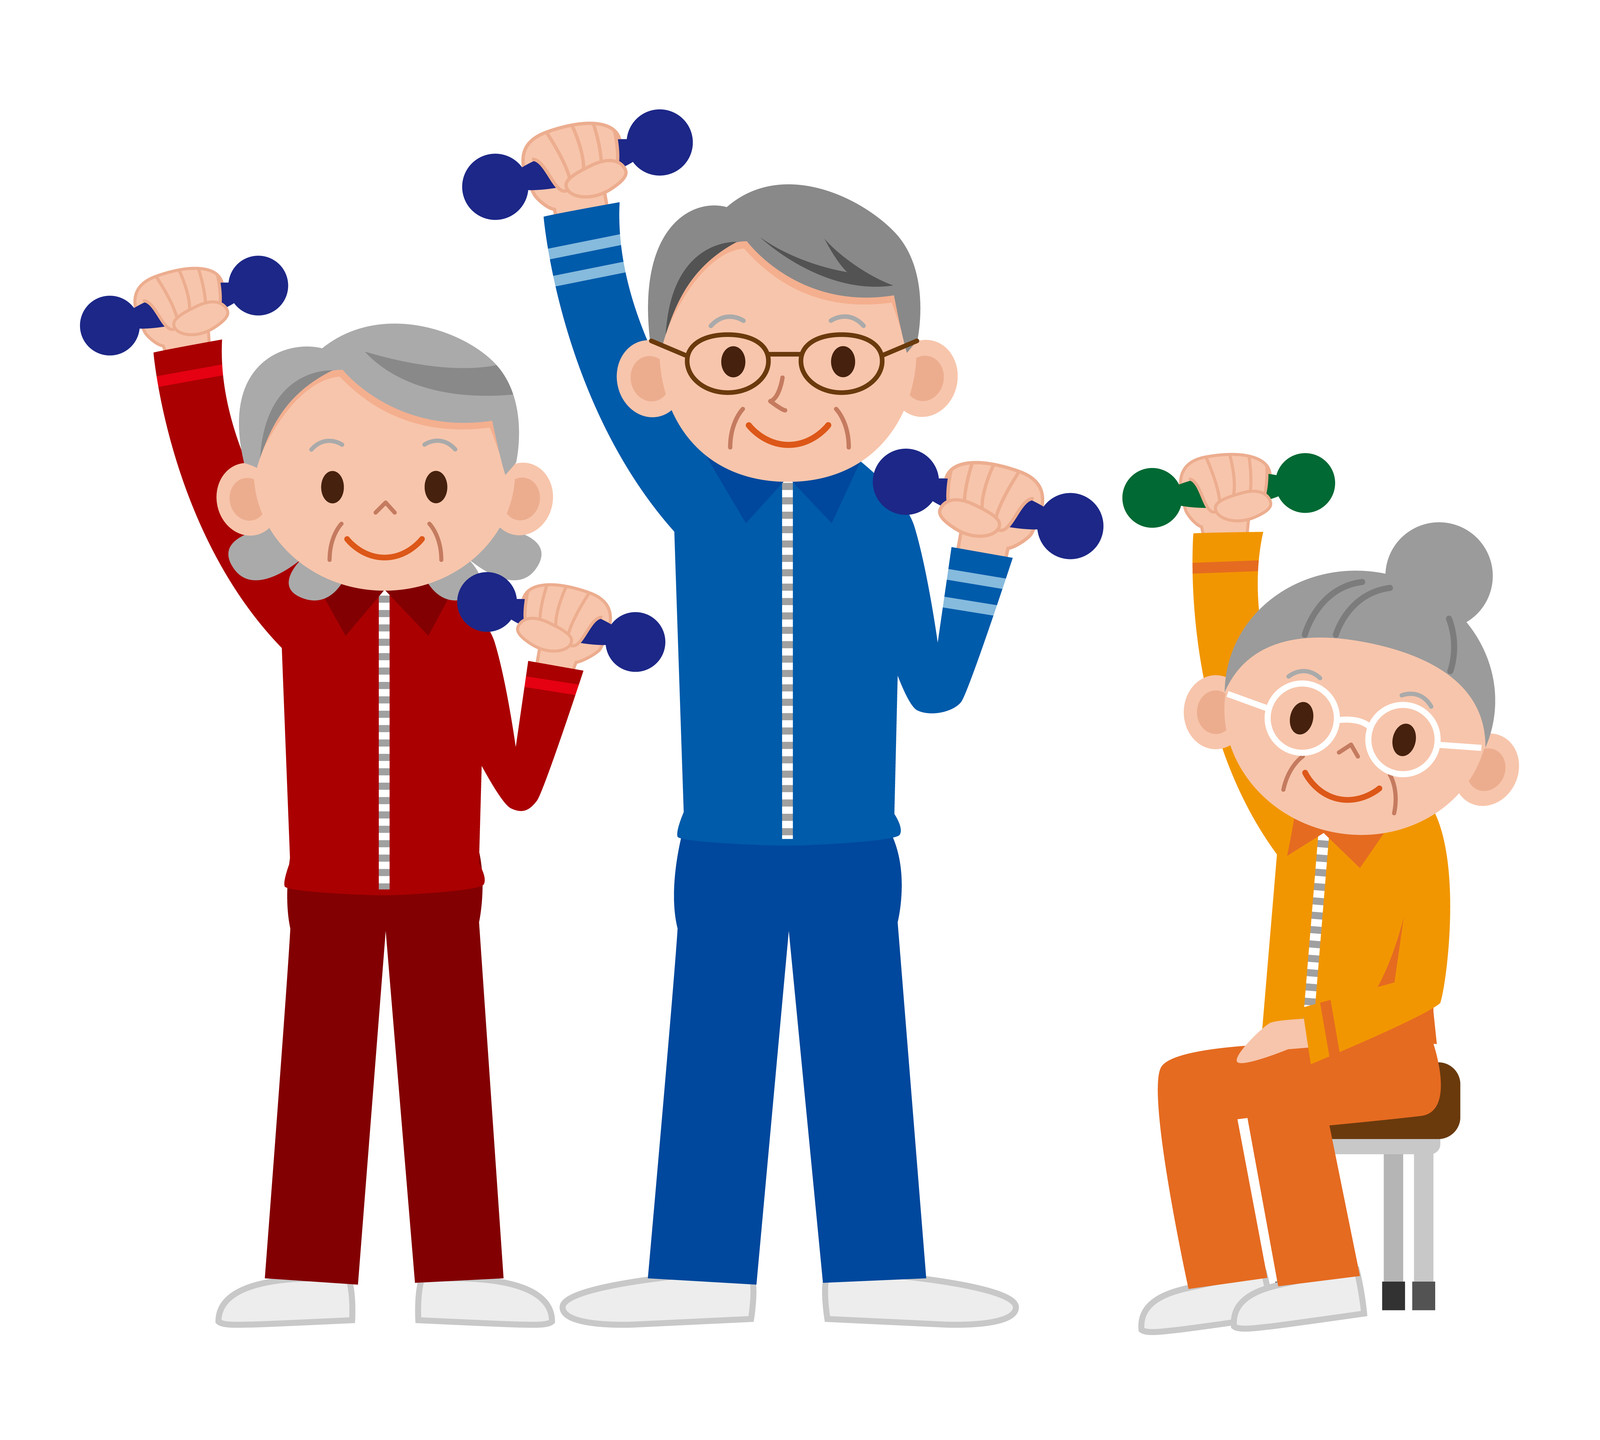 Chair cliparts zone . Exercising clipart senior exercise